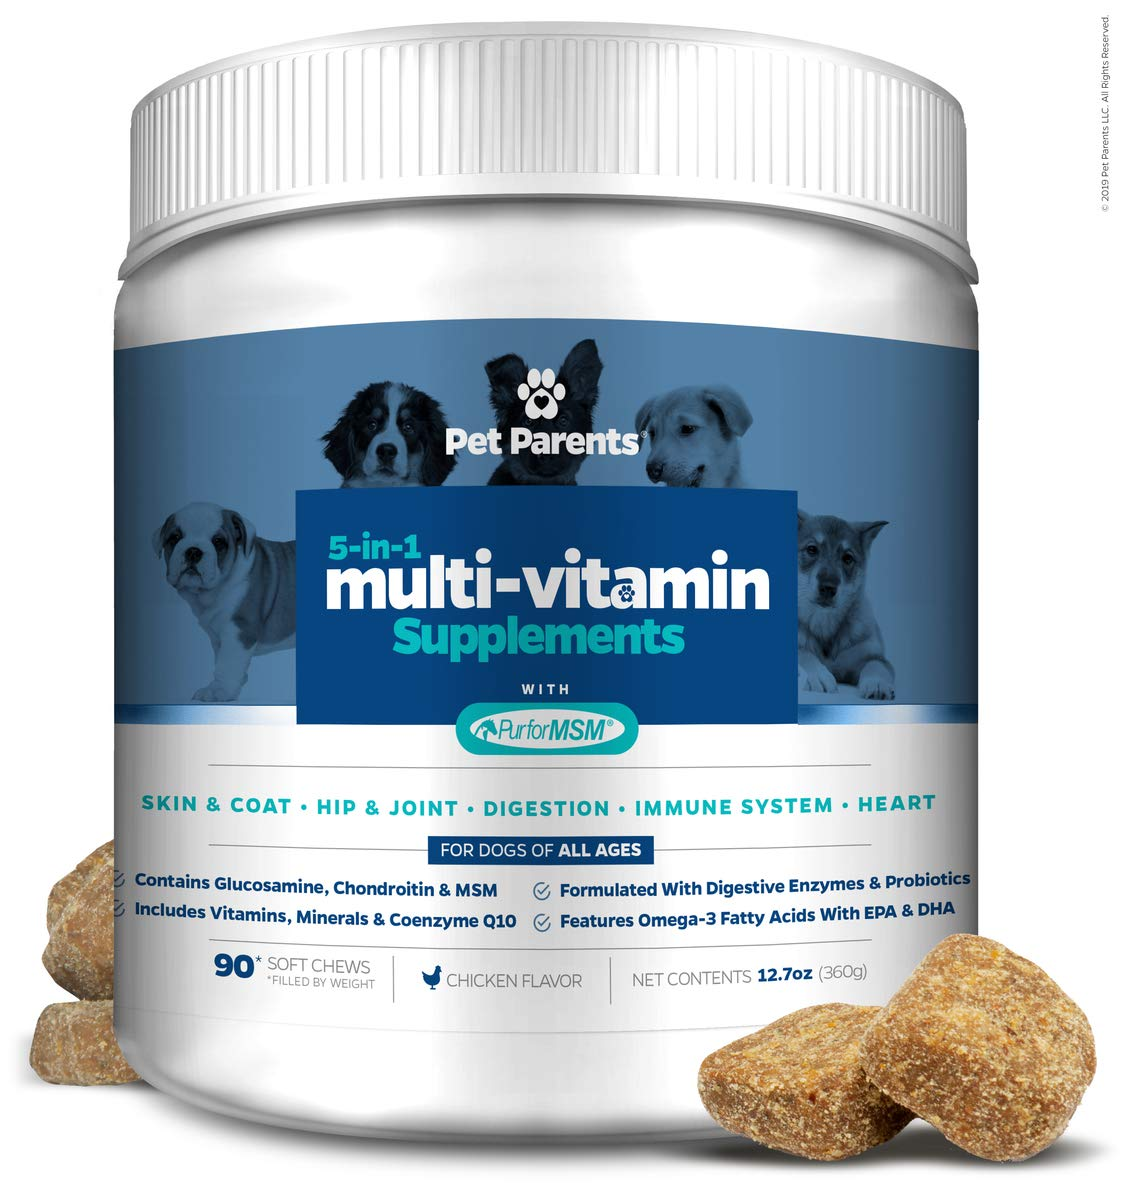 Pet Parents USA Dog Multivitamin 4g 90c- Omega 3 For Dogs + Glucosamine for Dogs + Dog Probiotics + MSM for Dogs, Multivitamin for Dogs, Dog Vitamins + Dog Immunity, Vitamins For Dogs & Puppy Vitamins by Pet Parents